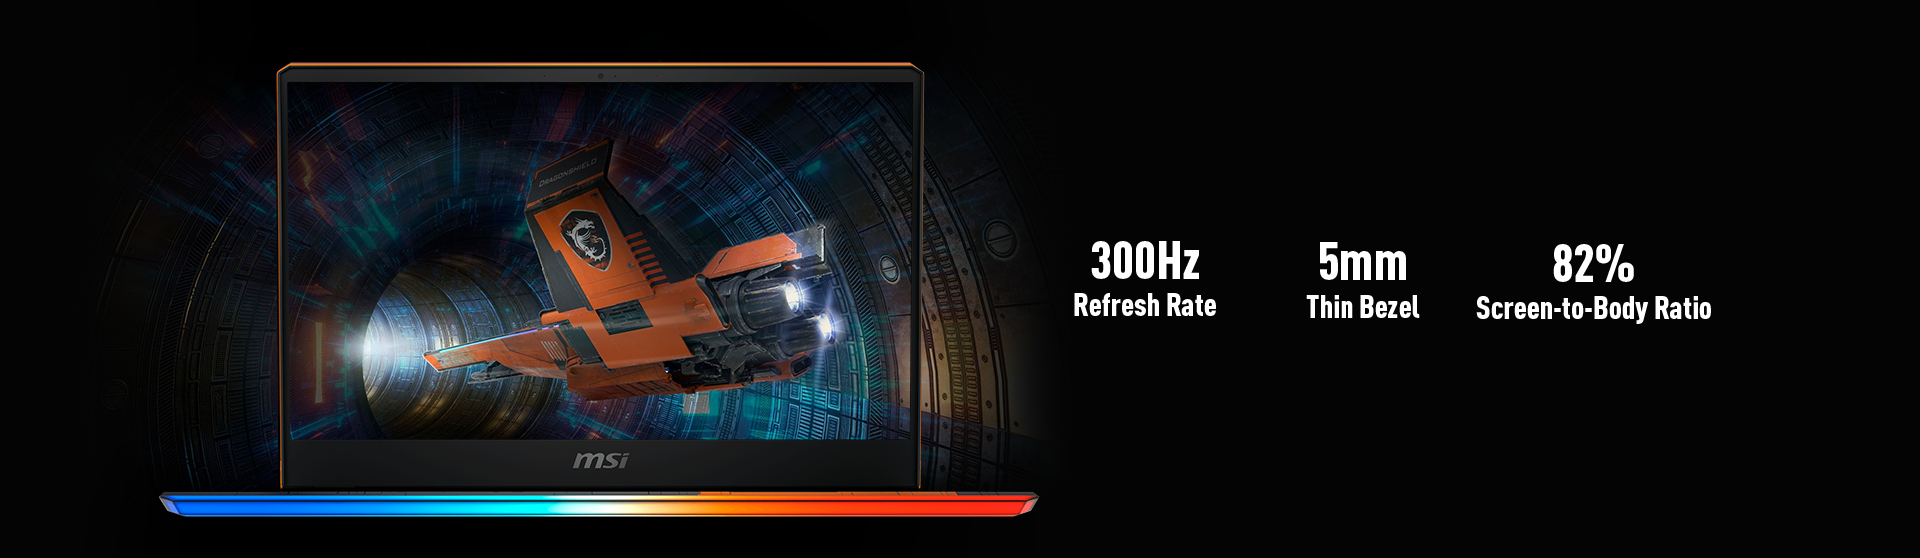 Speed up with the blazingly fast 300Hz refresh rate display, 5 times faster than conventional laptops. Experience fluid gaming visuals so you can react more quickly while gaming.